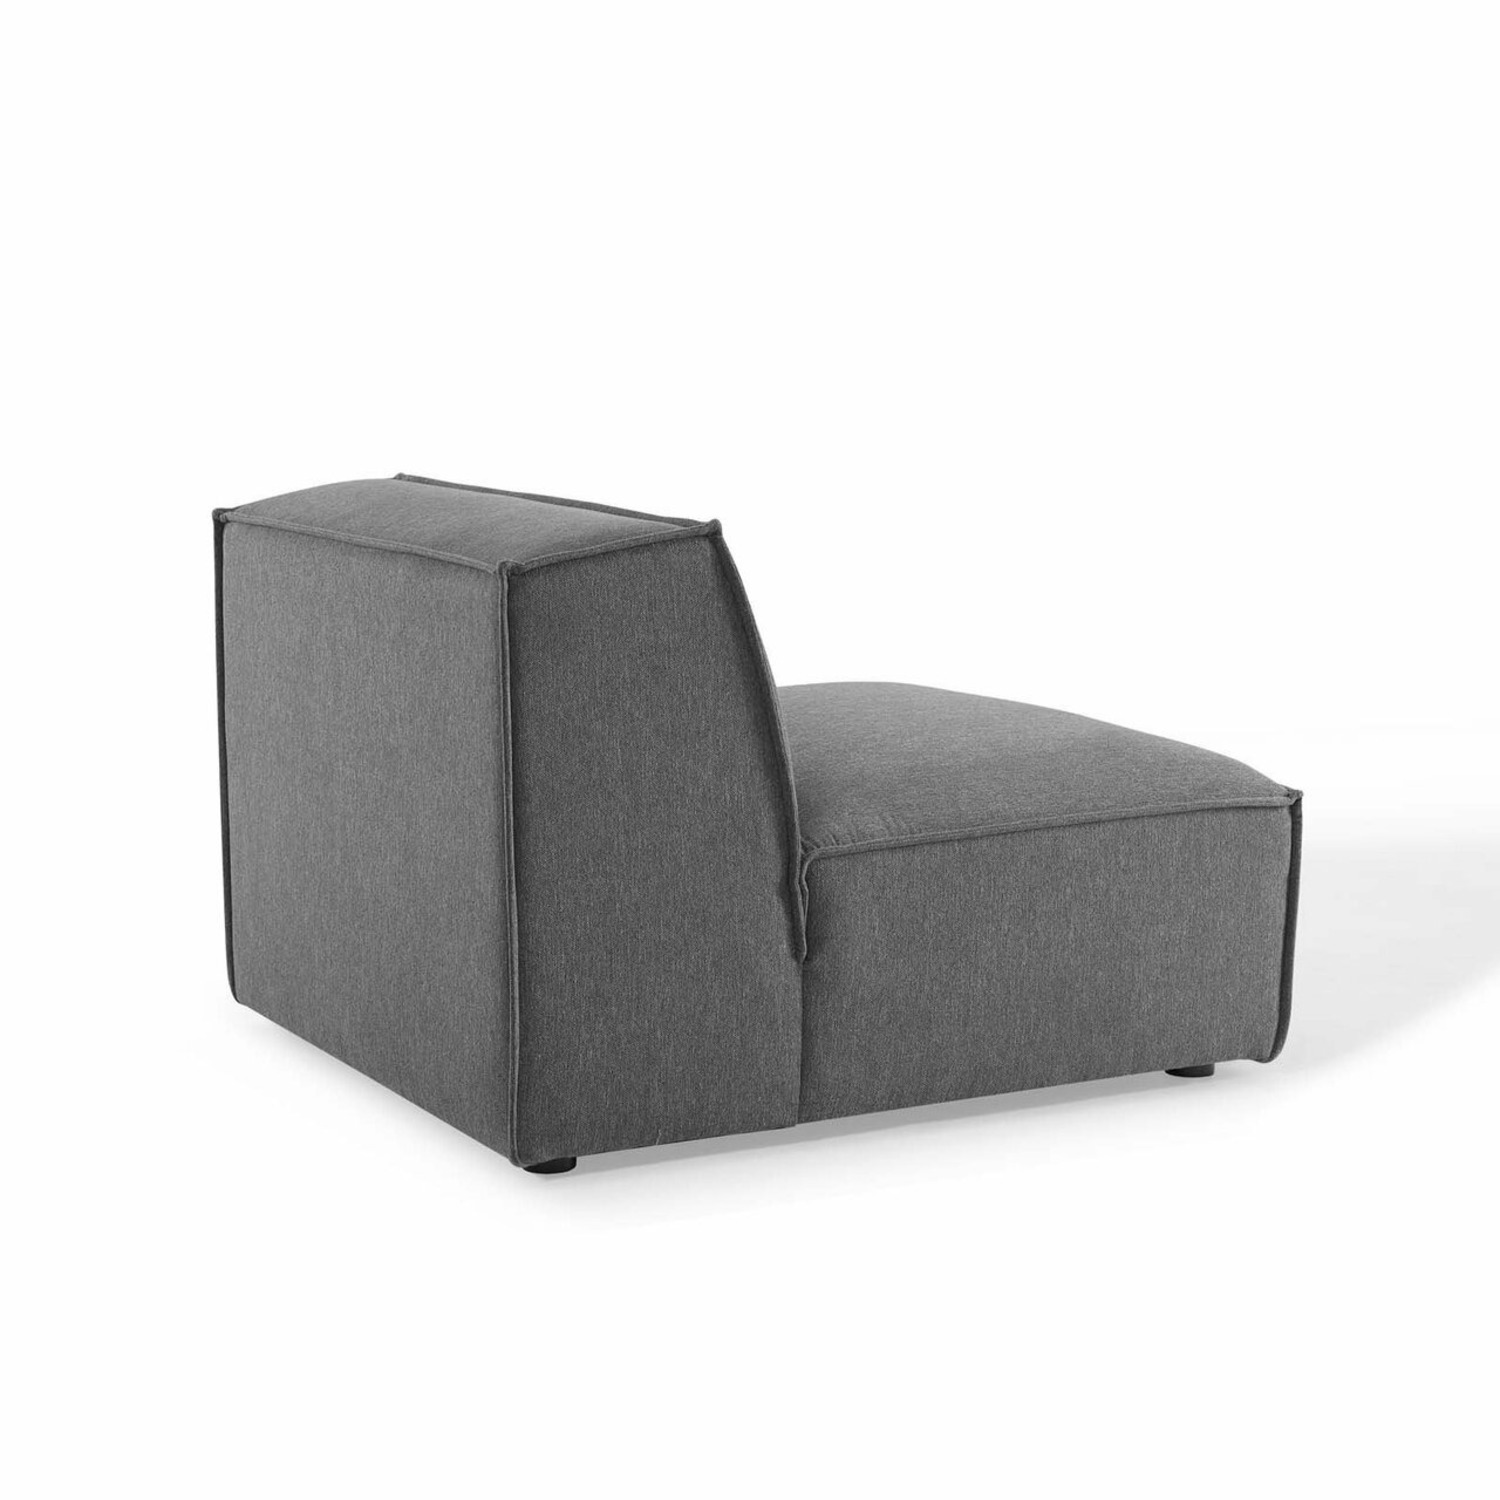 3-Piece Sectional Sofa In Charcoal Upholstery - image-9